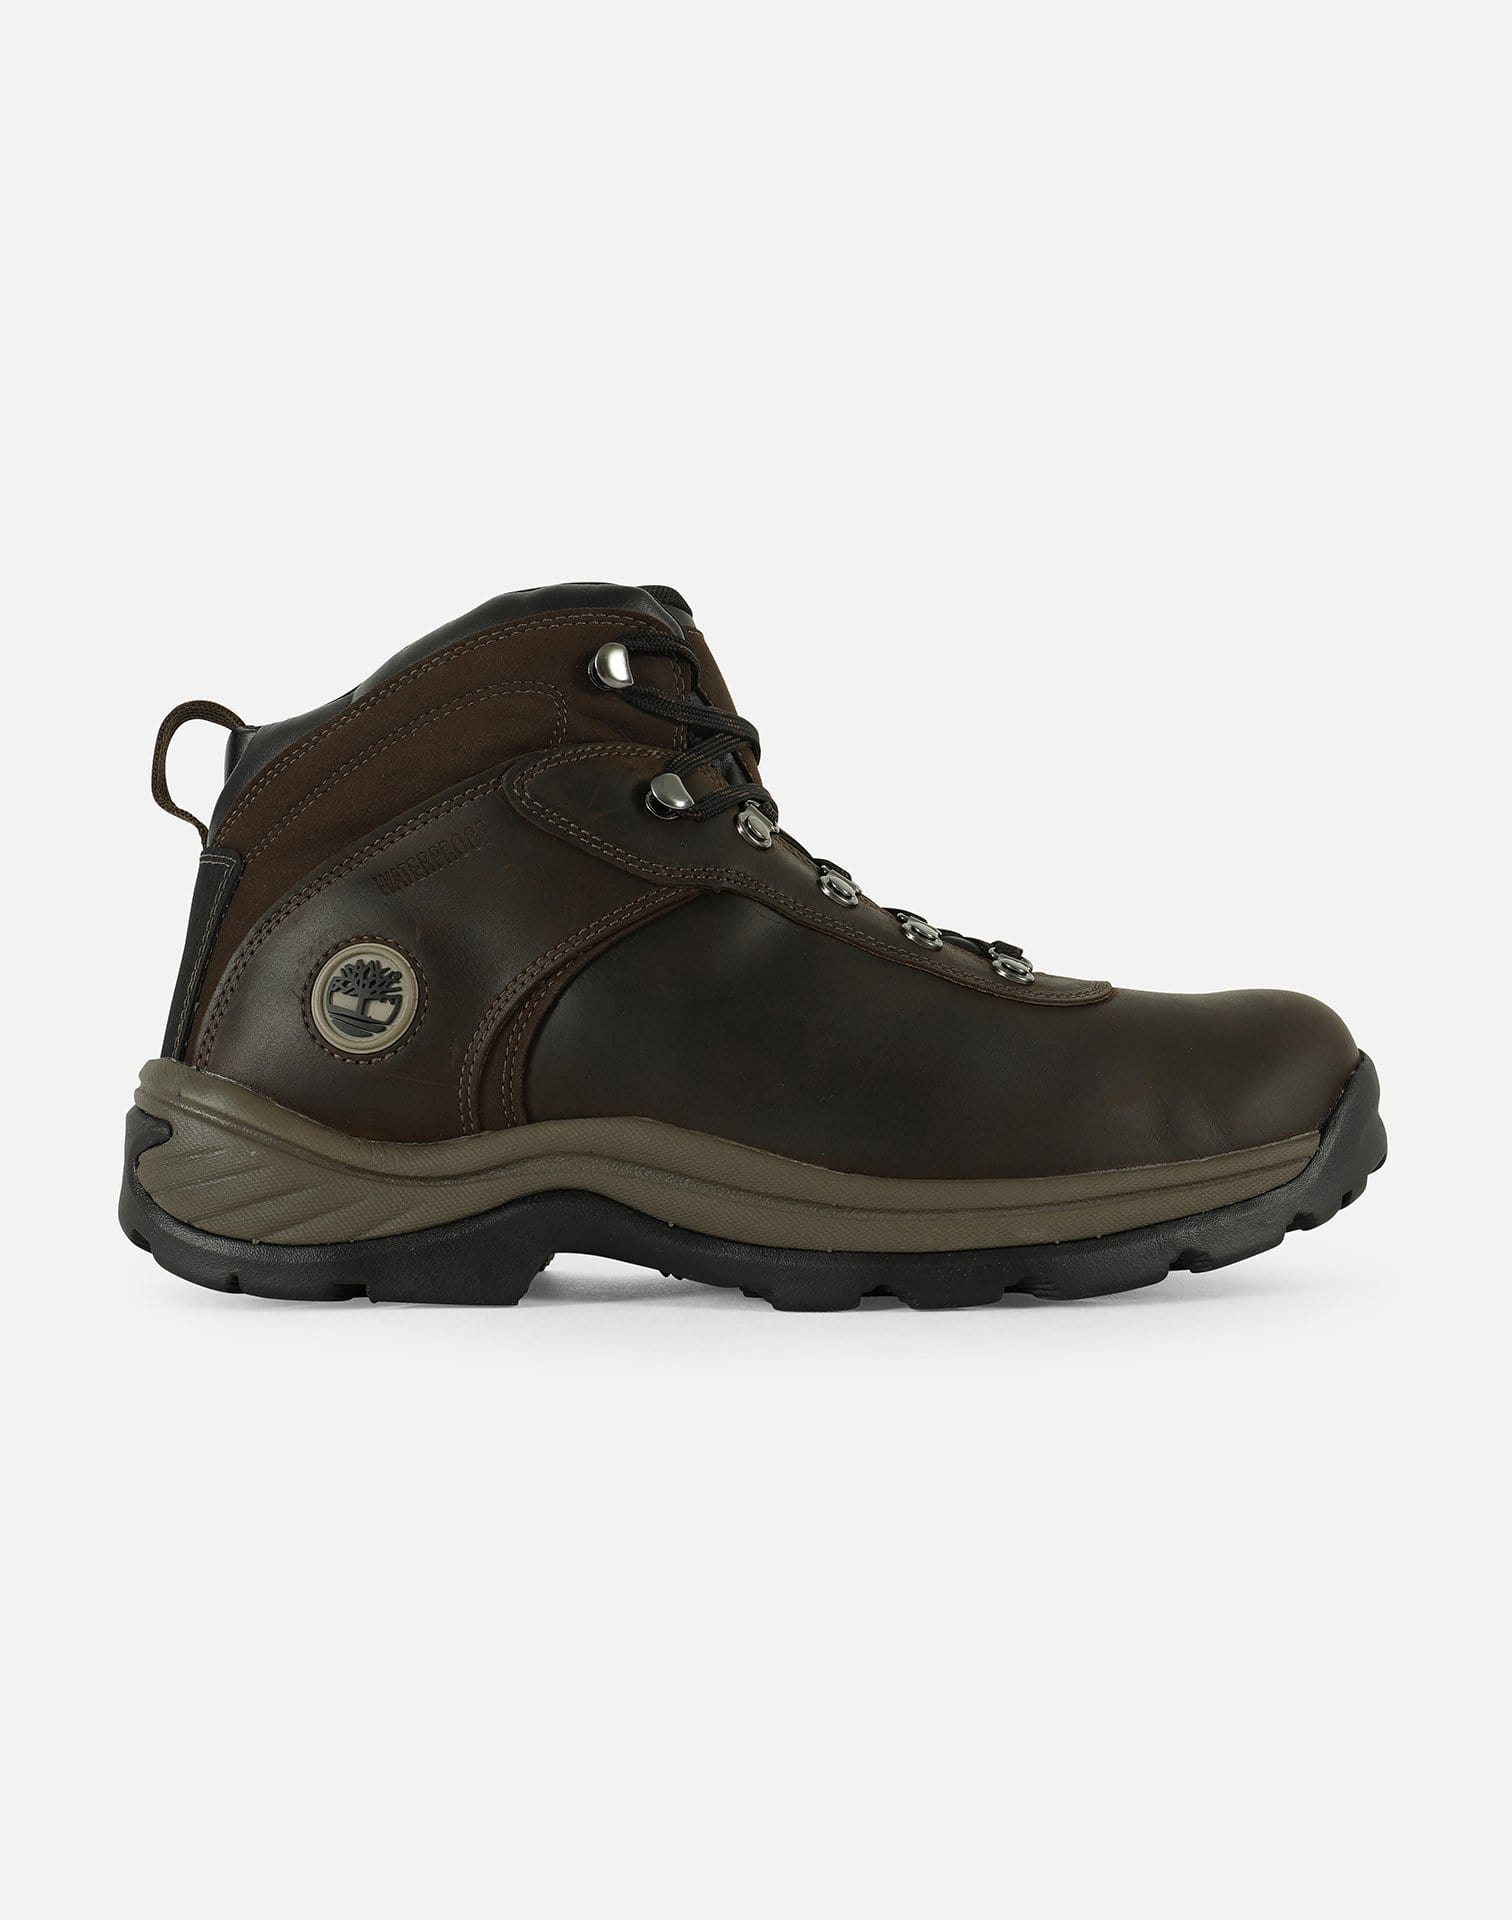 Timberland Men's Flume Mid Waterproof Boots